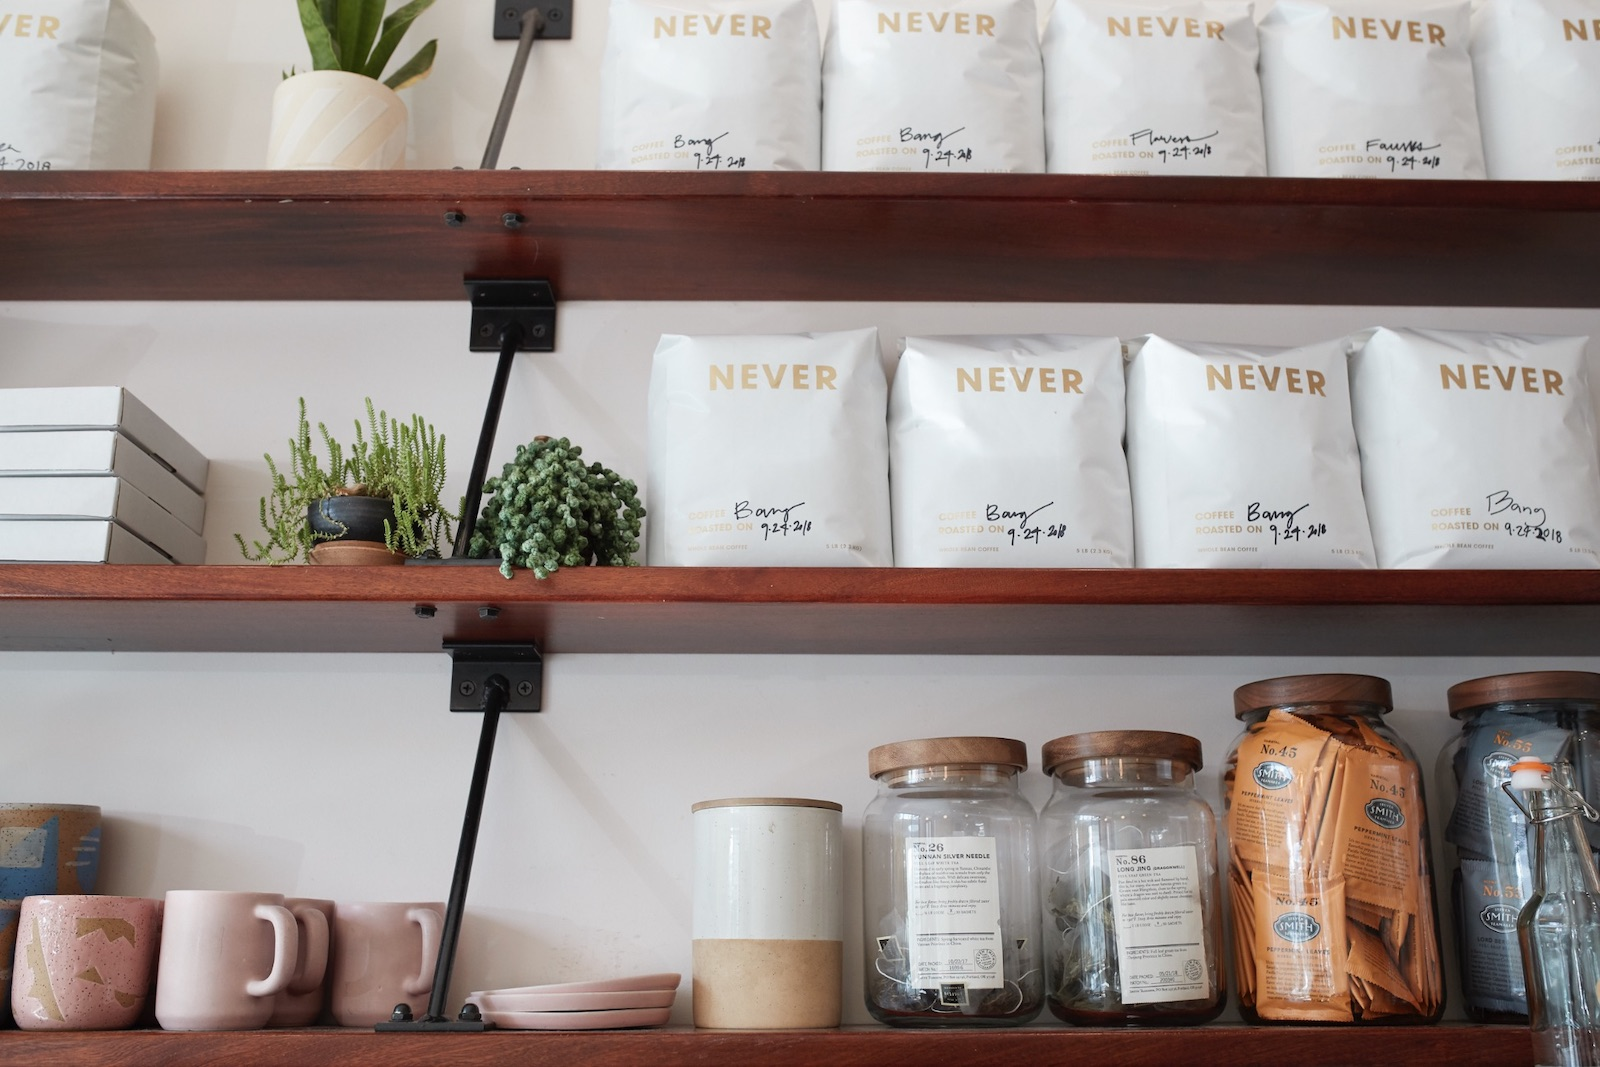 Never Coffee on Design*Sponge